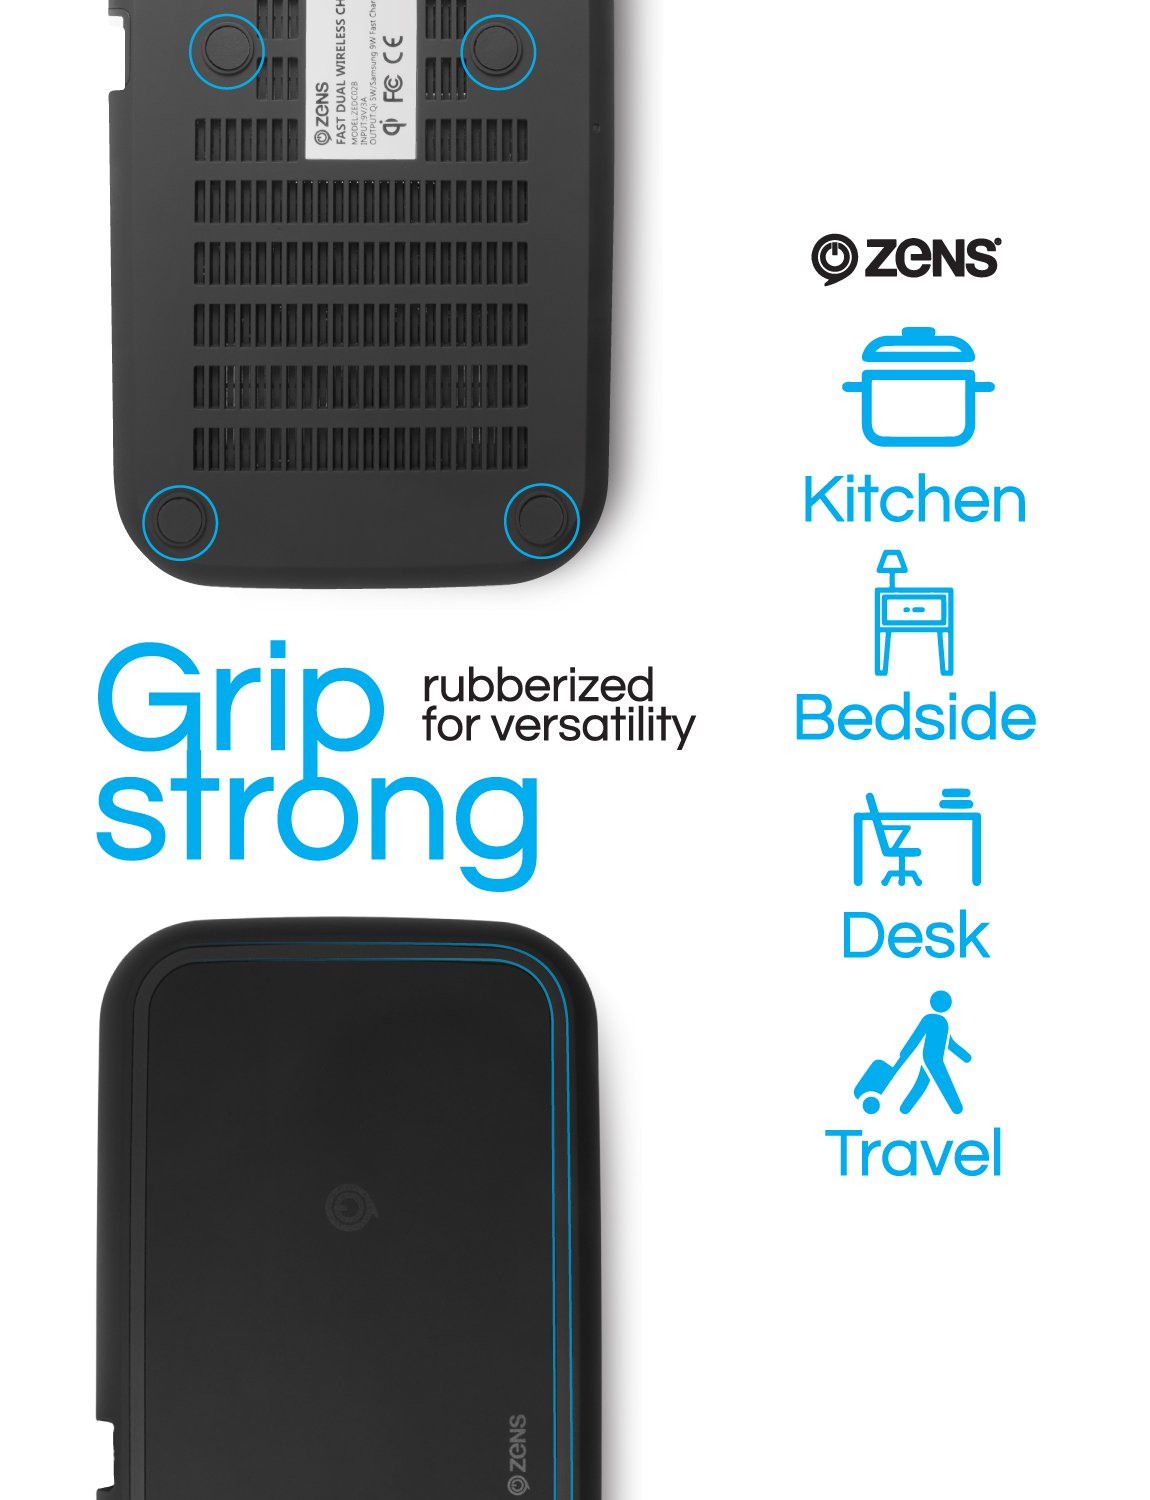 ZENS Wireless Charging Pad | Dual Qi Charger Pad with 2X 15 Watt Power Output | Compatible with Apple iPhone 8/8 Plus/X/XR/Xs Max, Samsung Galaxy S10 and Airpods 2 | Includes AC/DC Adapter | Black by ZENS (Image #7)